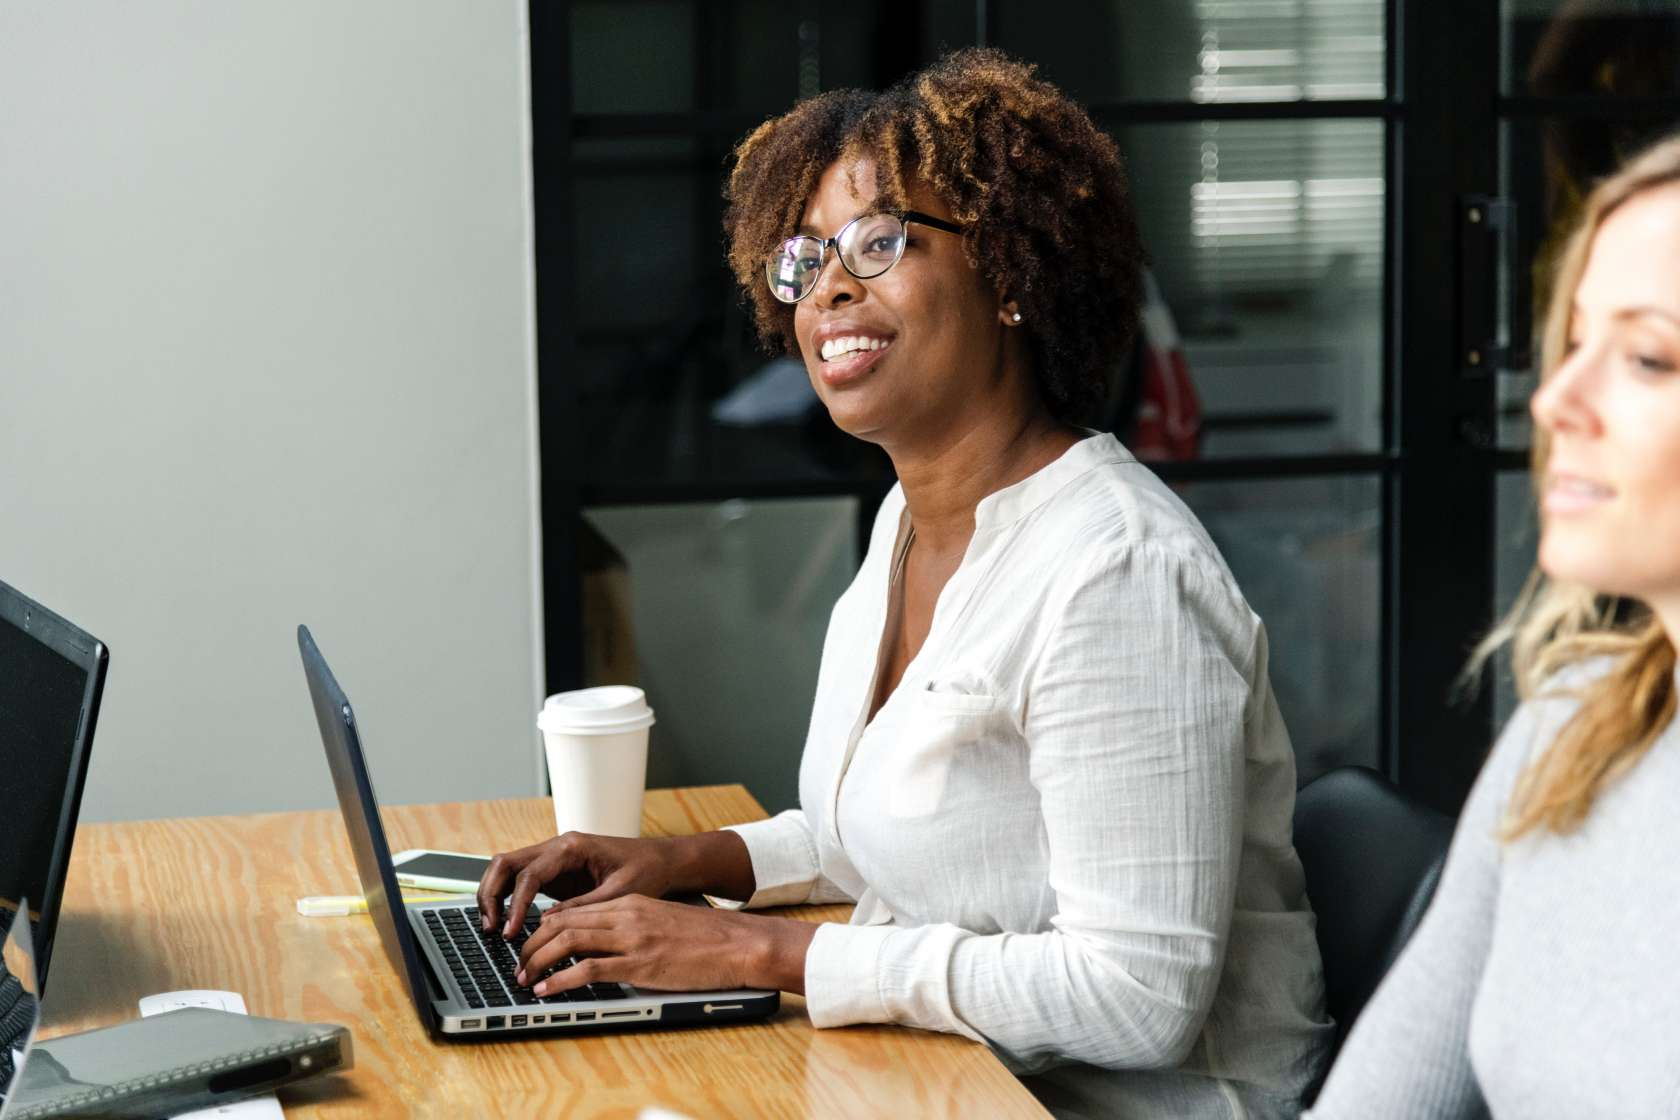 Woman on computer in meeting room